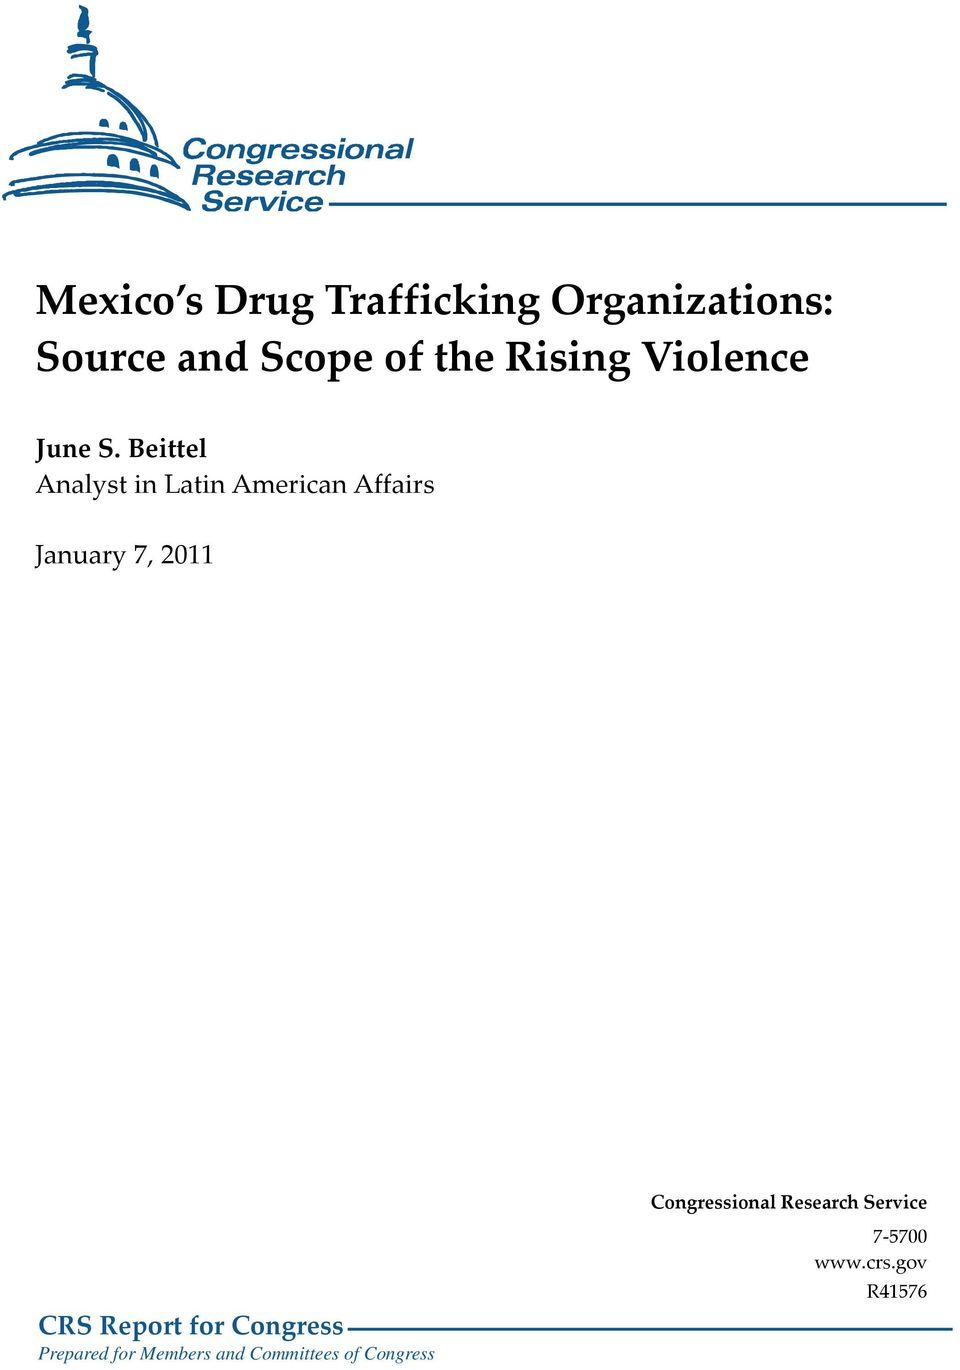 Beittel Analyst in Latin American Affairs January 7, 2011